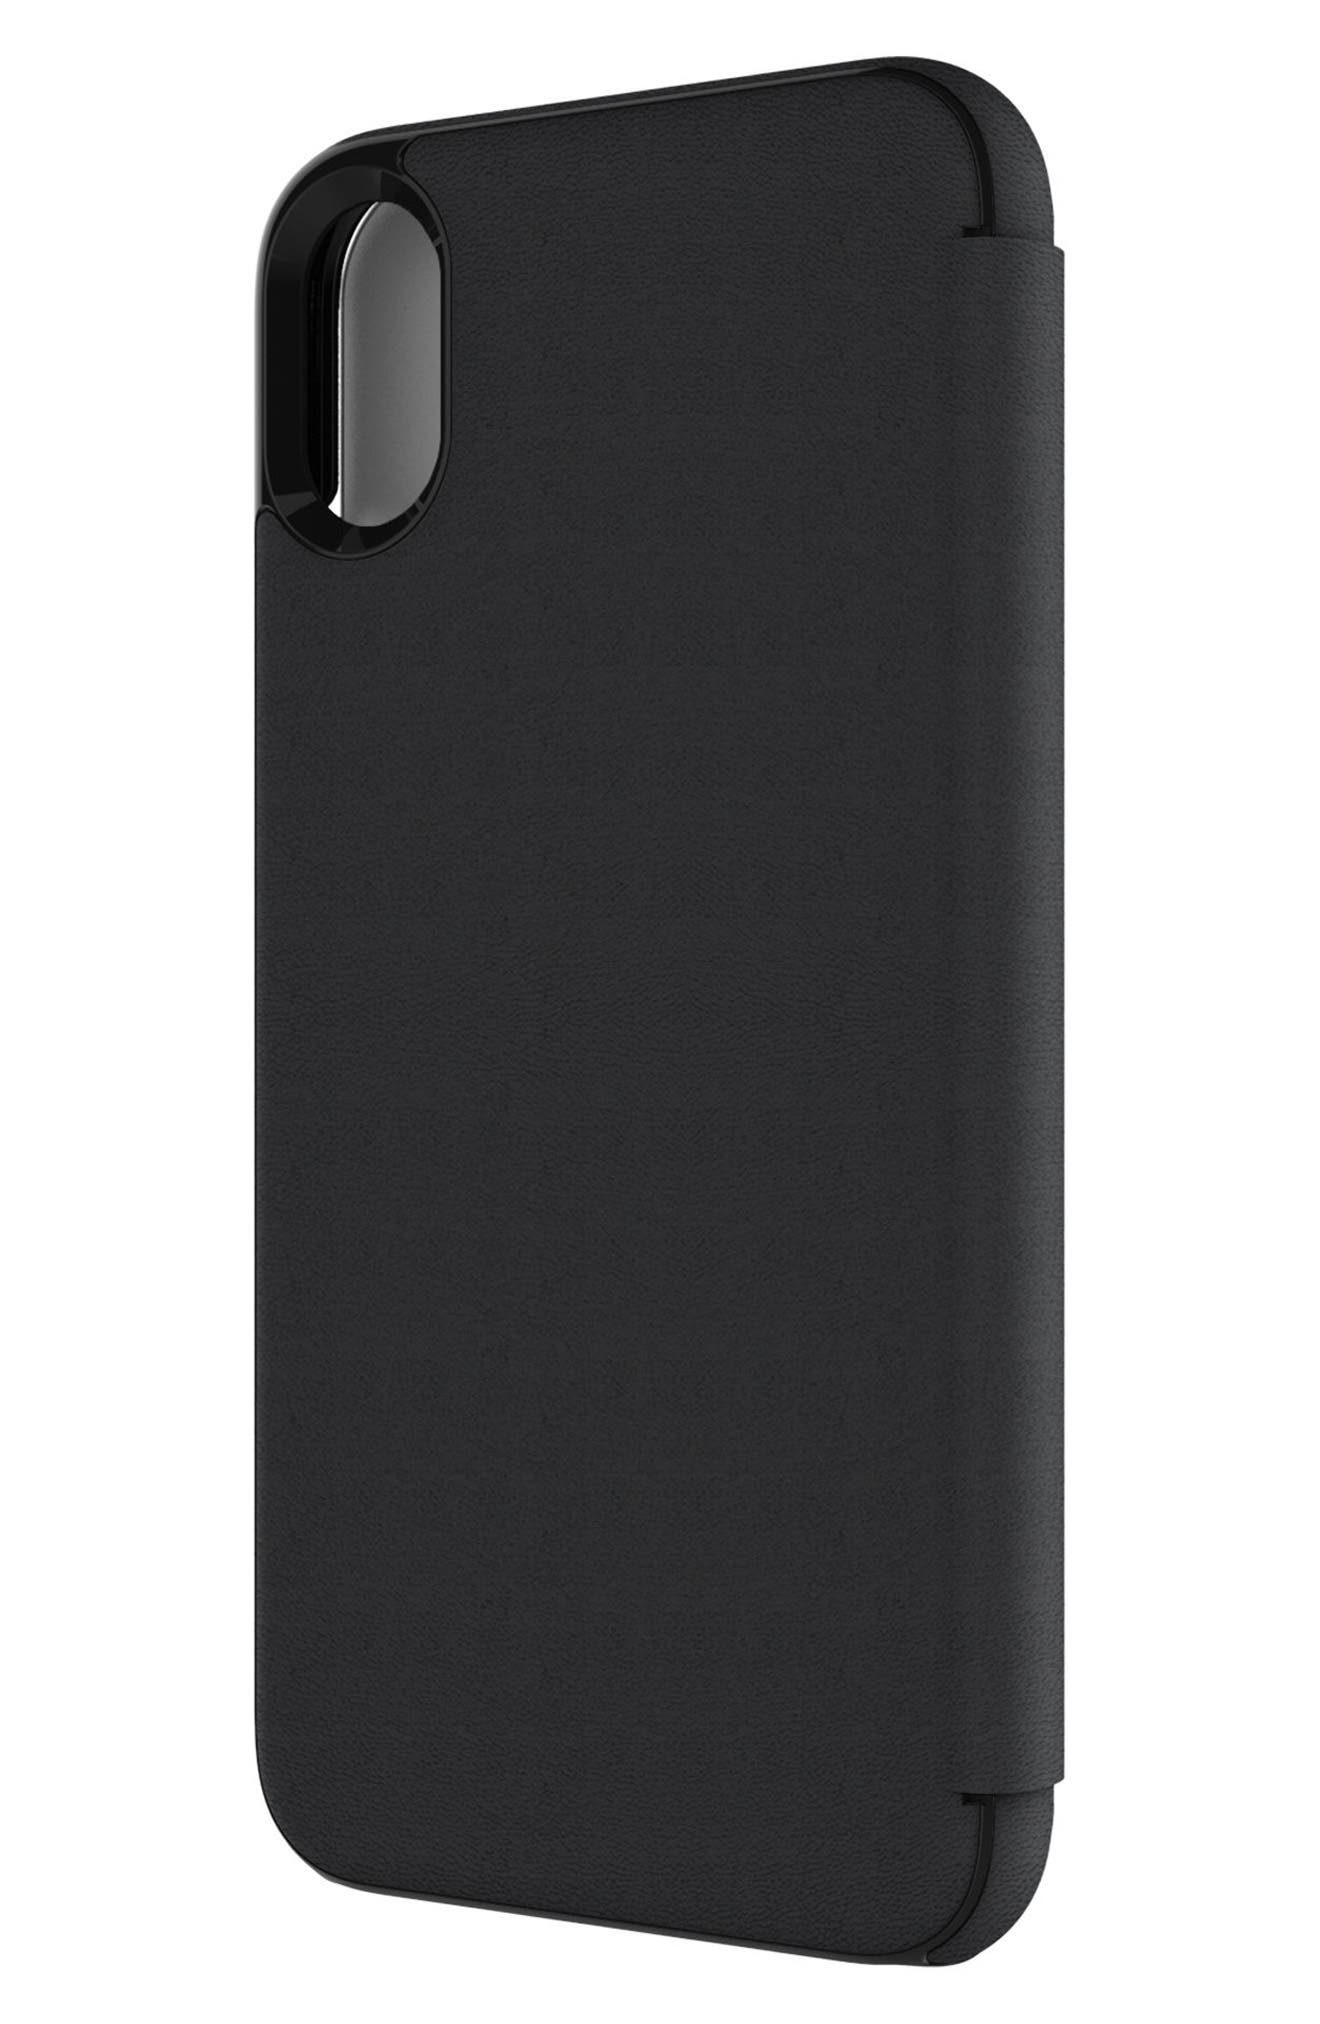 Privacy Folio iPhone X & Xs Case,                             Alternate thumbnail 2, color,                             003